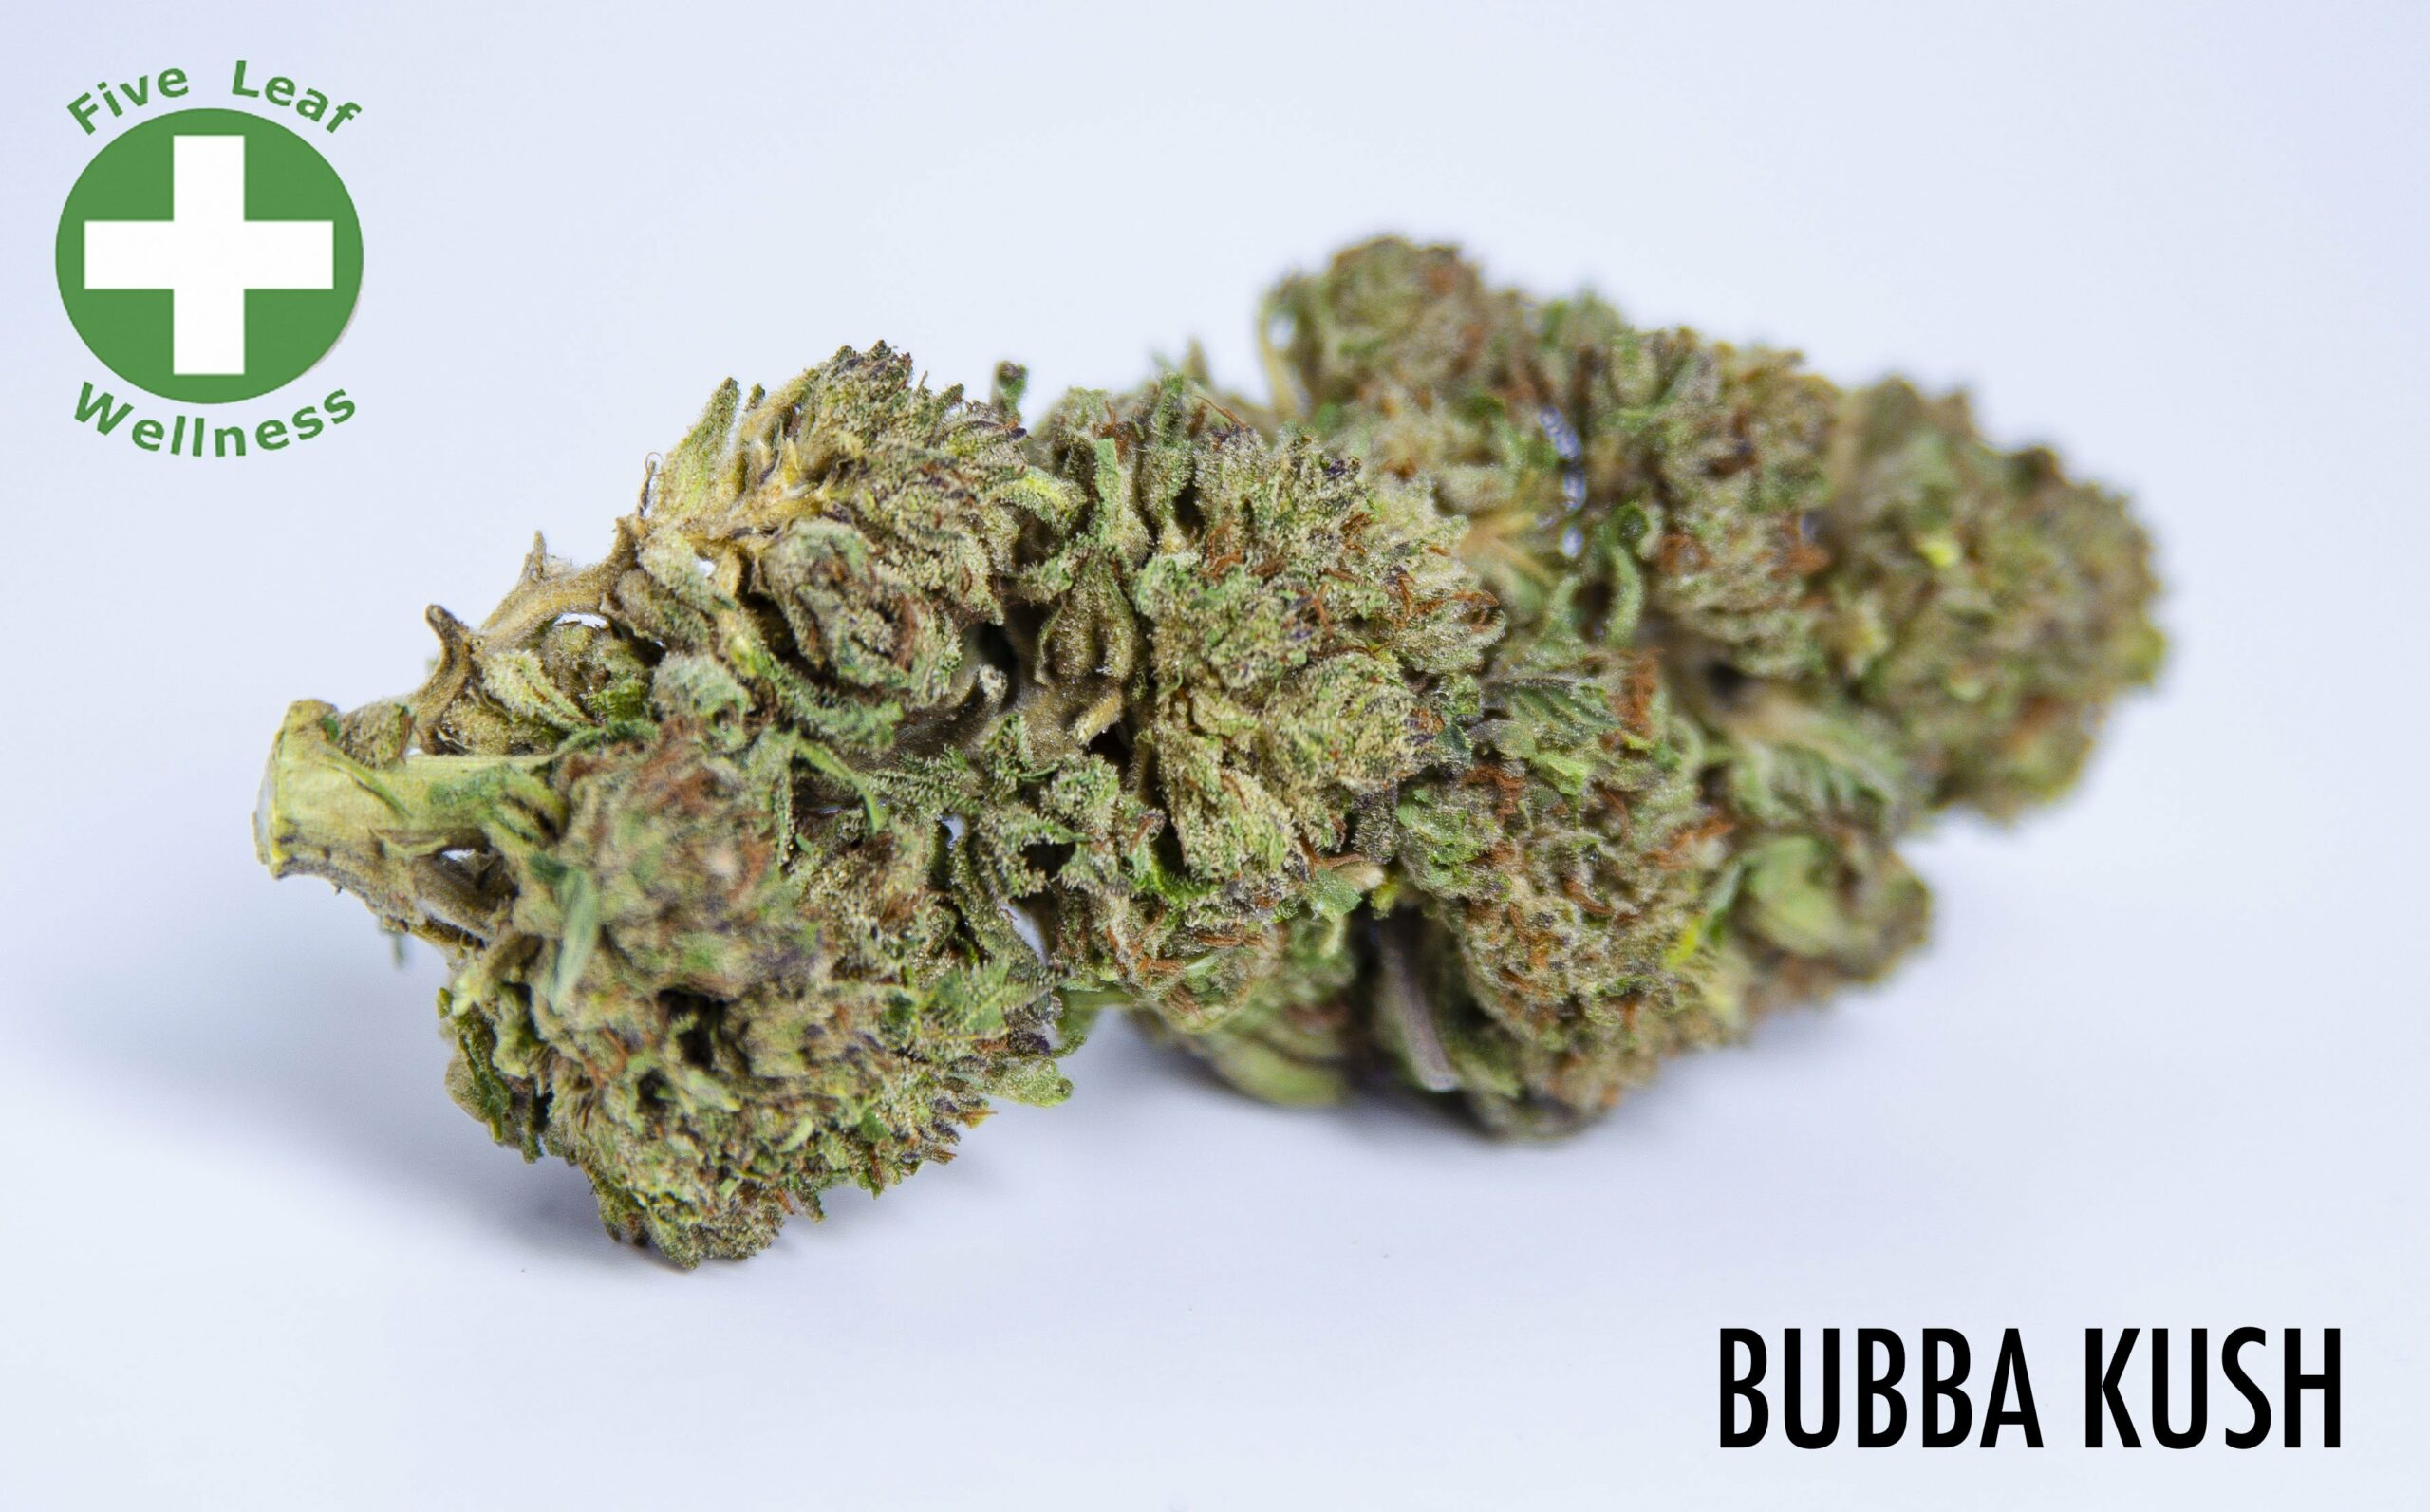 *SOLD OUT UNTIL HARVEST SEASON* Bubba Kush